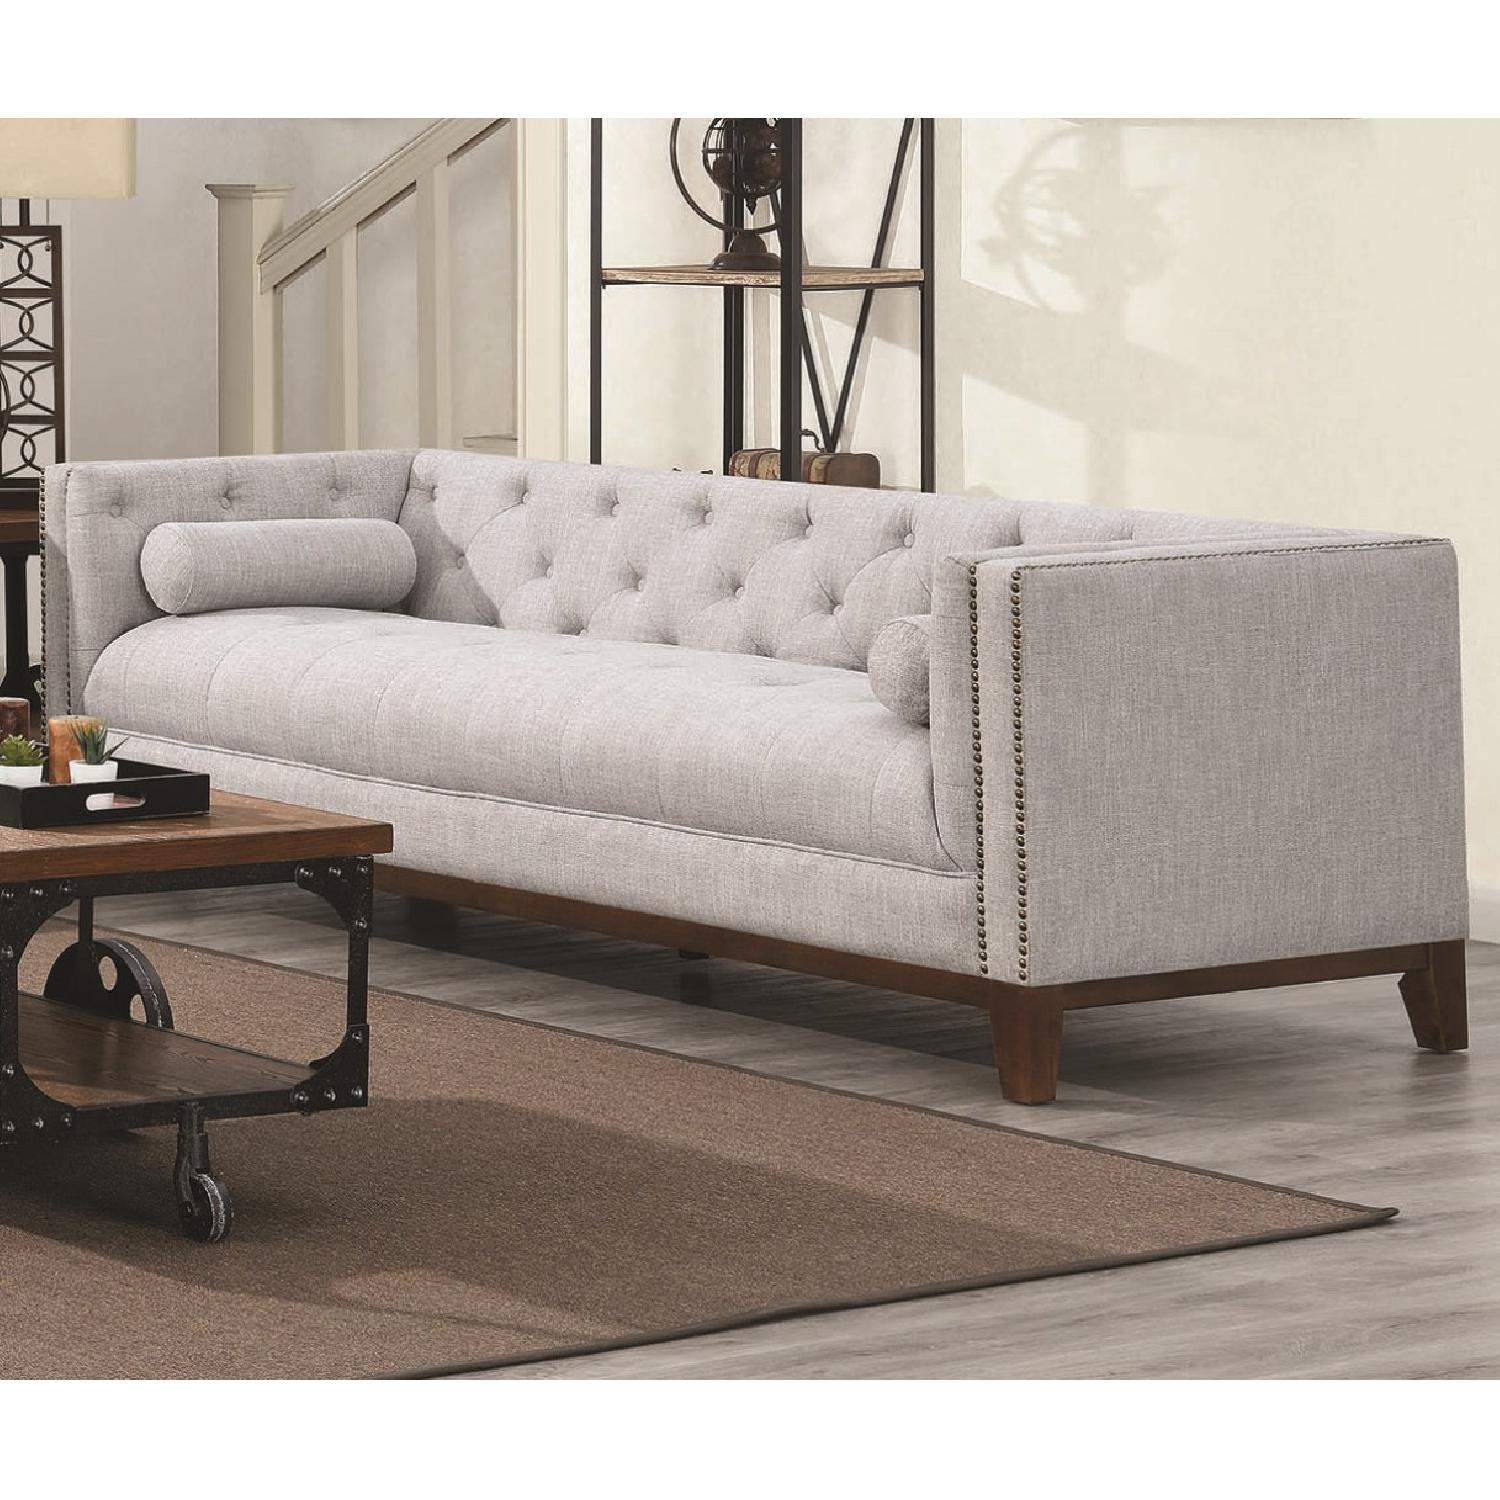 Modern Style Sofa w/ Tufted Buttons & Nailhead Accent - image-3